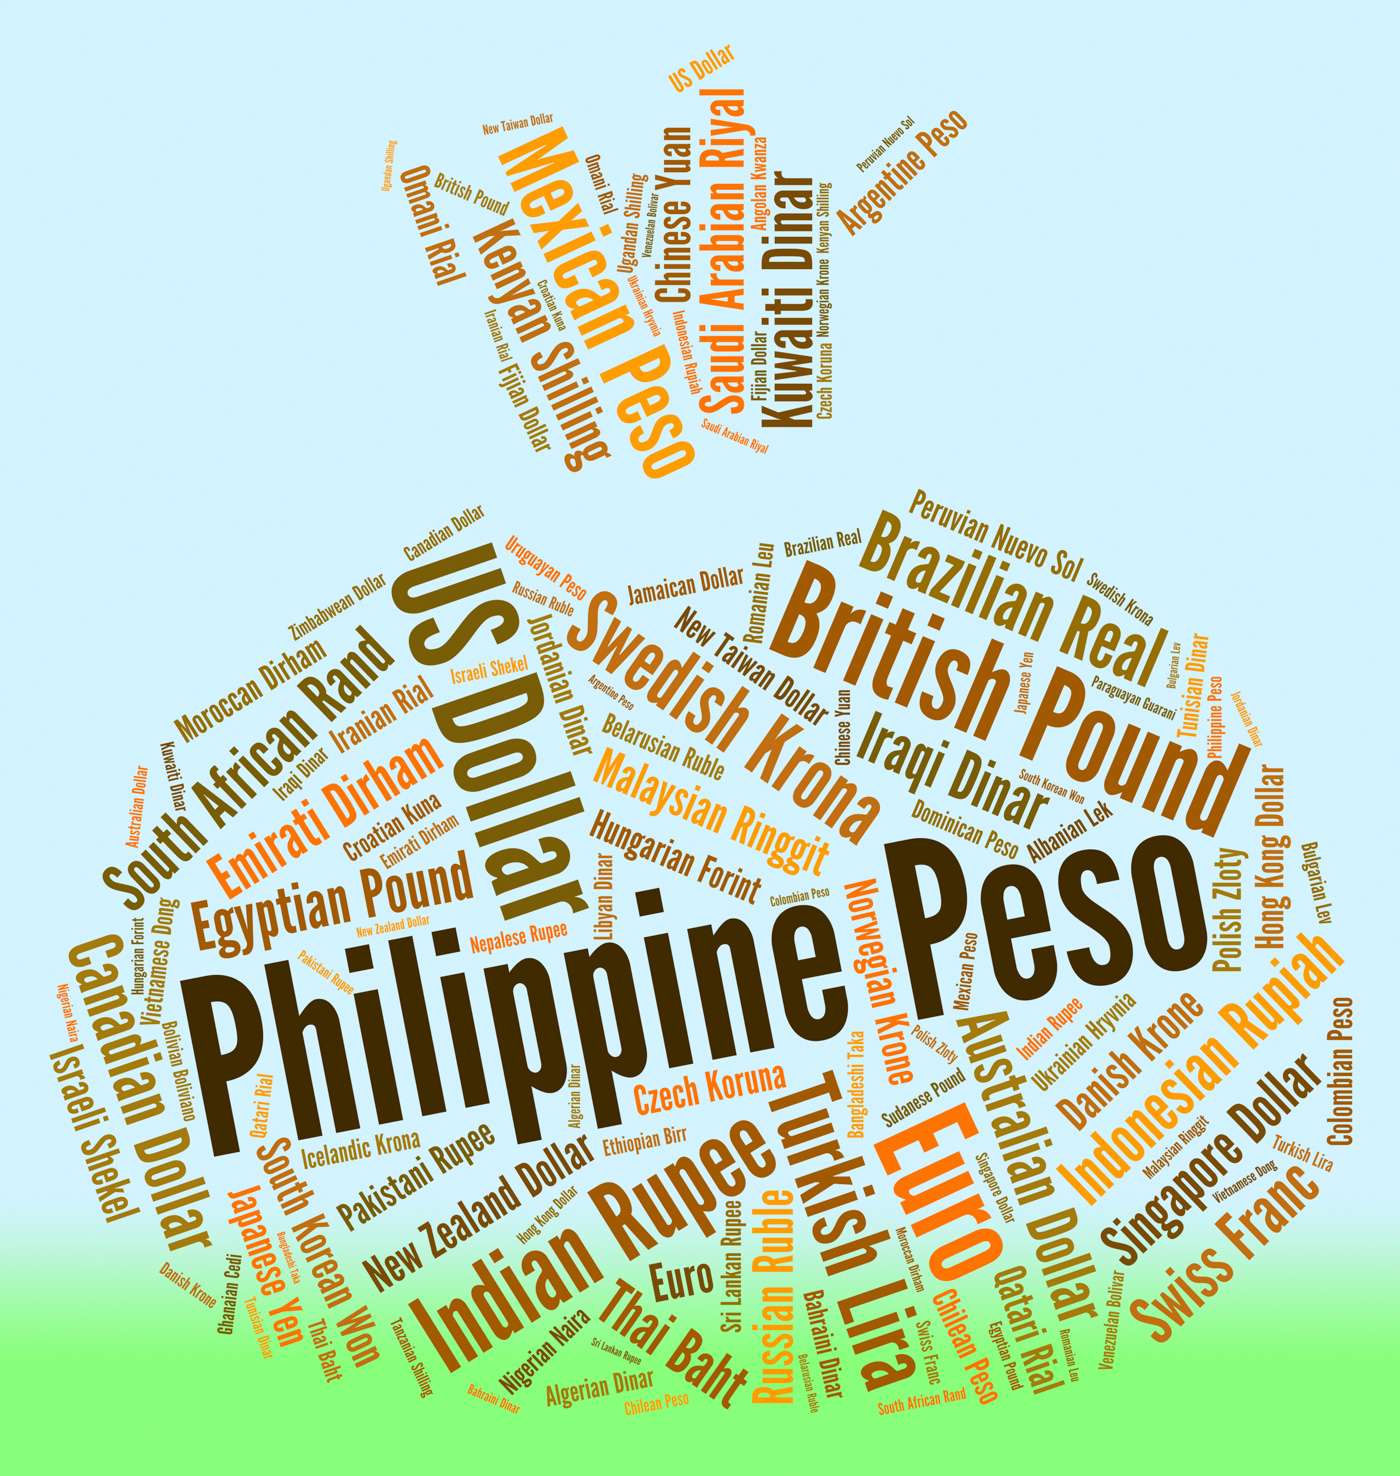 Philippine Peso Means Exchange Rate And Banknote, Banknote, Words, Wordcloud, Word, HQ Photo